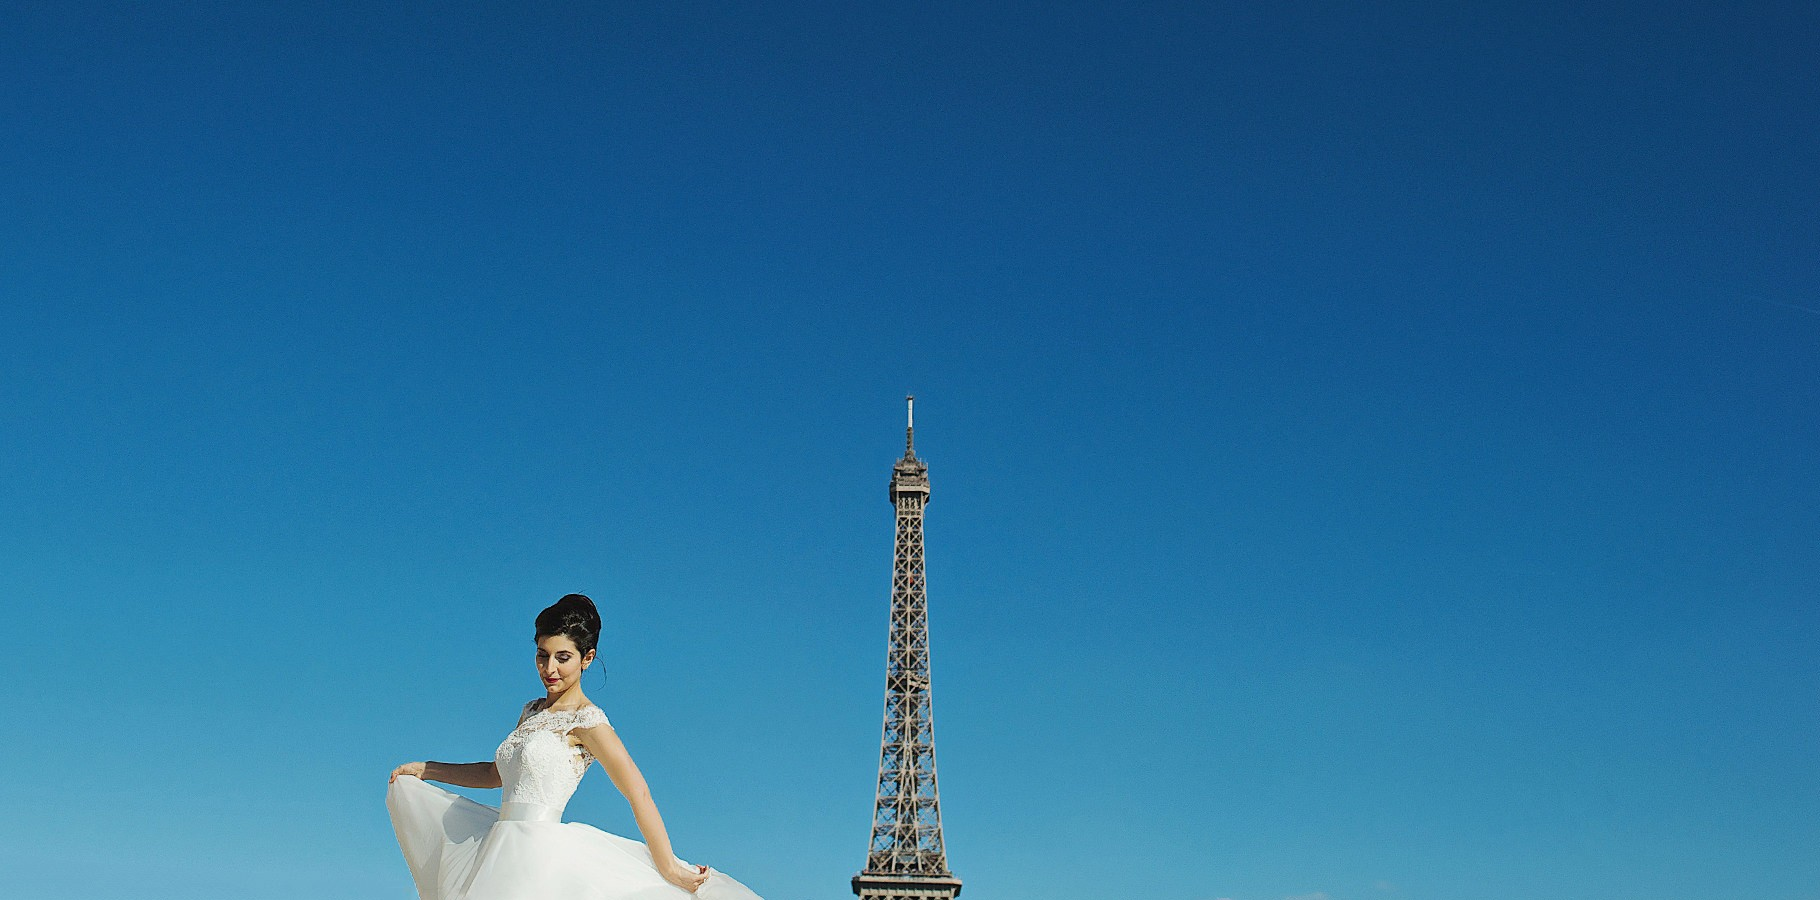 paris-eiffel-tower-wedding-photo